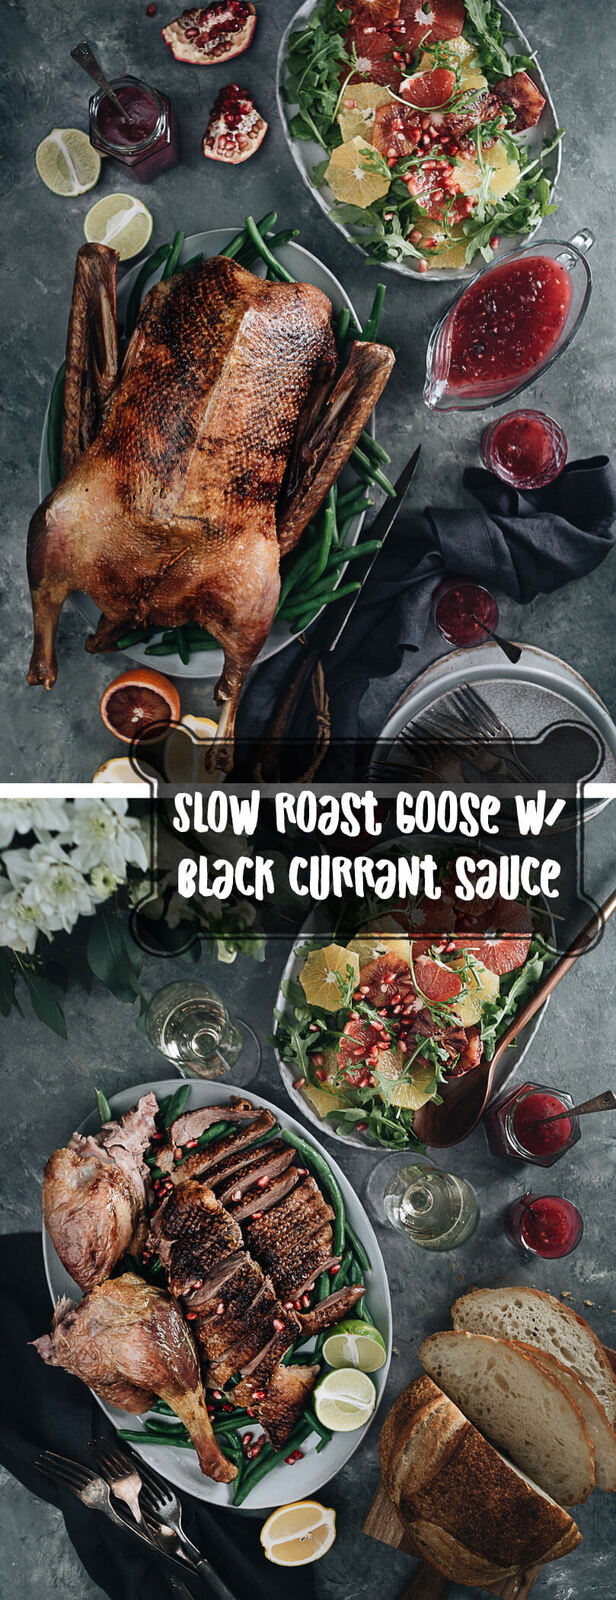 Slow Roast Goose With Black Currant Sauce - A perfect dish for your Thanksgiving or Christmas dinner, which you can make in advance with minimal hands-on time. The recipe yields extra juicy meat with crispy skin.